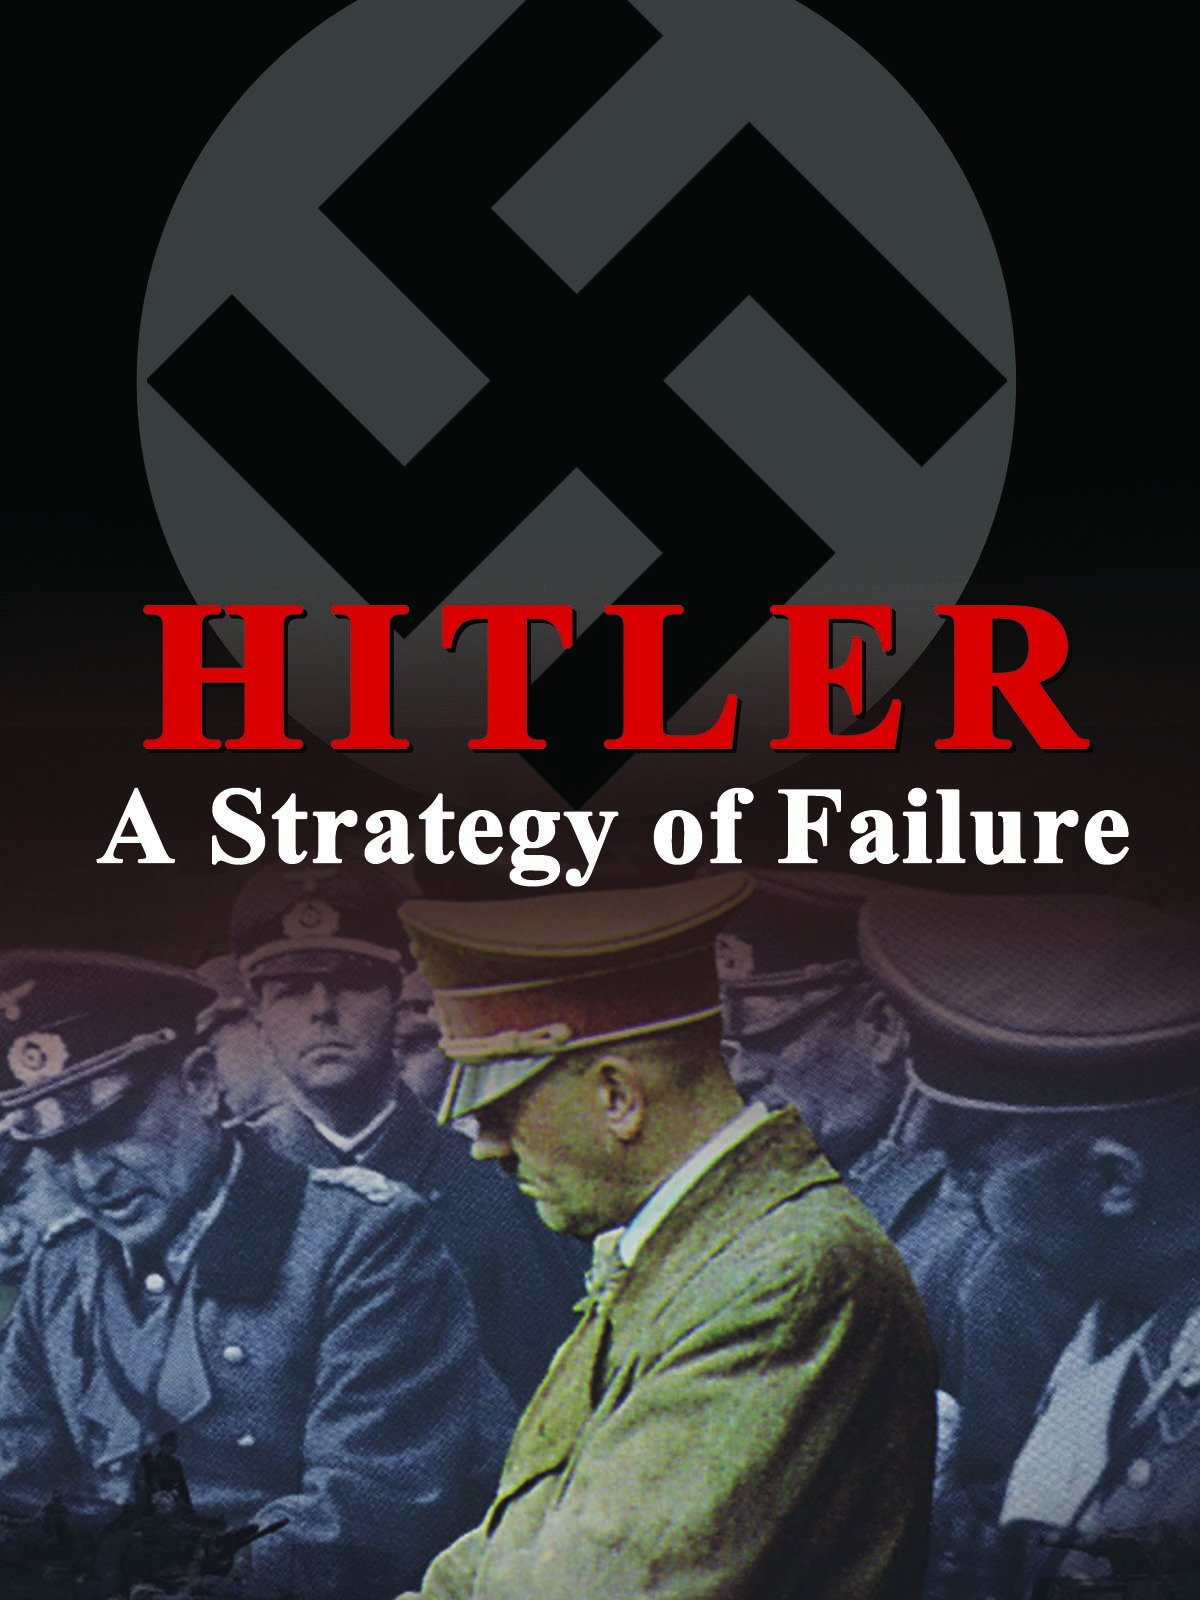 Hitler - A Strategy of Failure on Amazon Prime Video UK